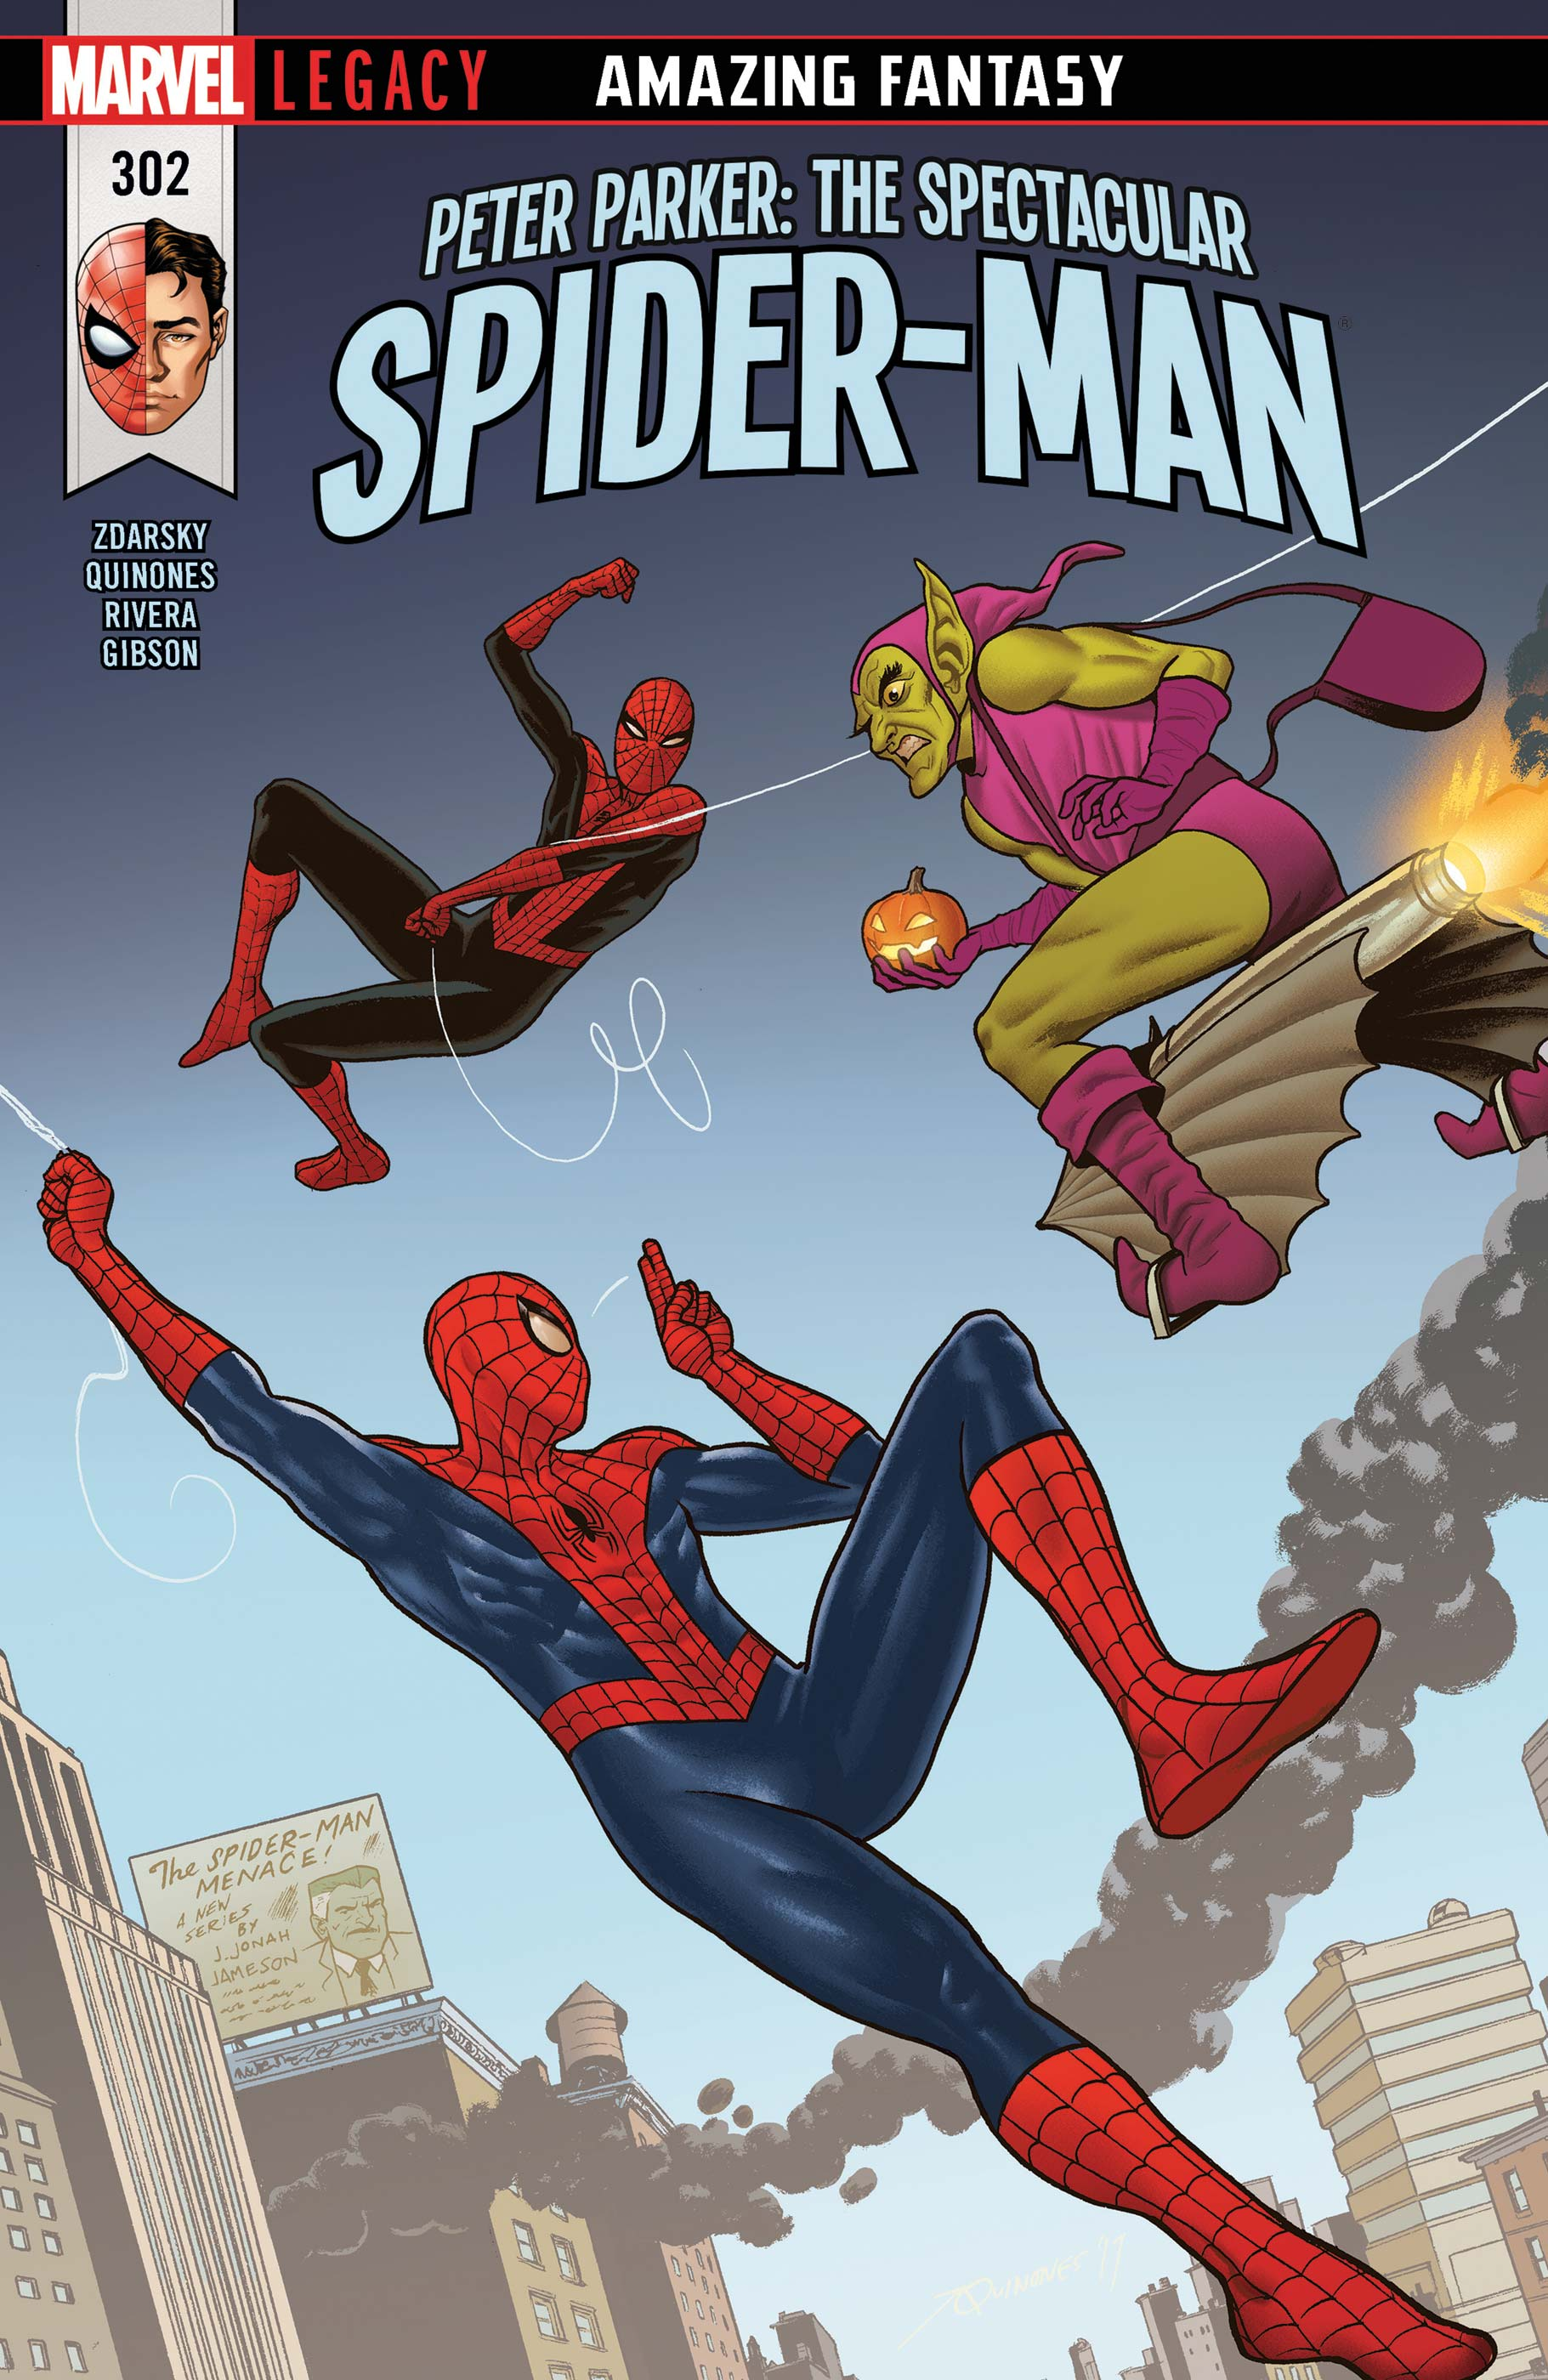 Peter Parker: The Spectacular Spider-Man (2017) #302